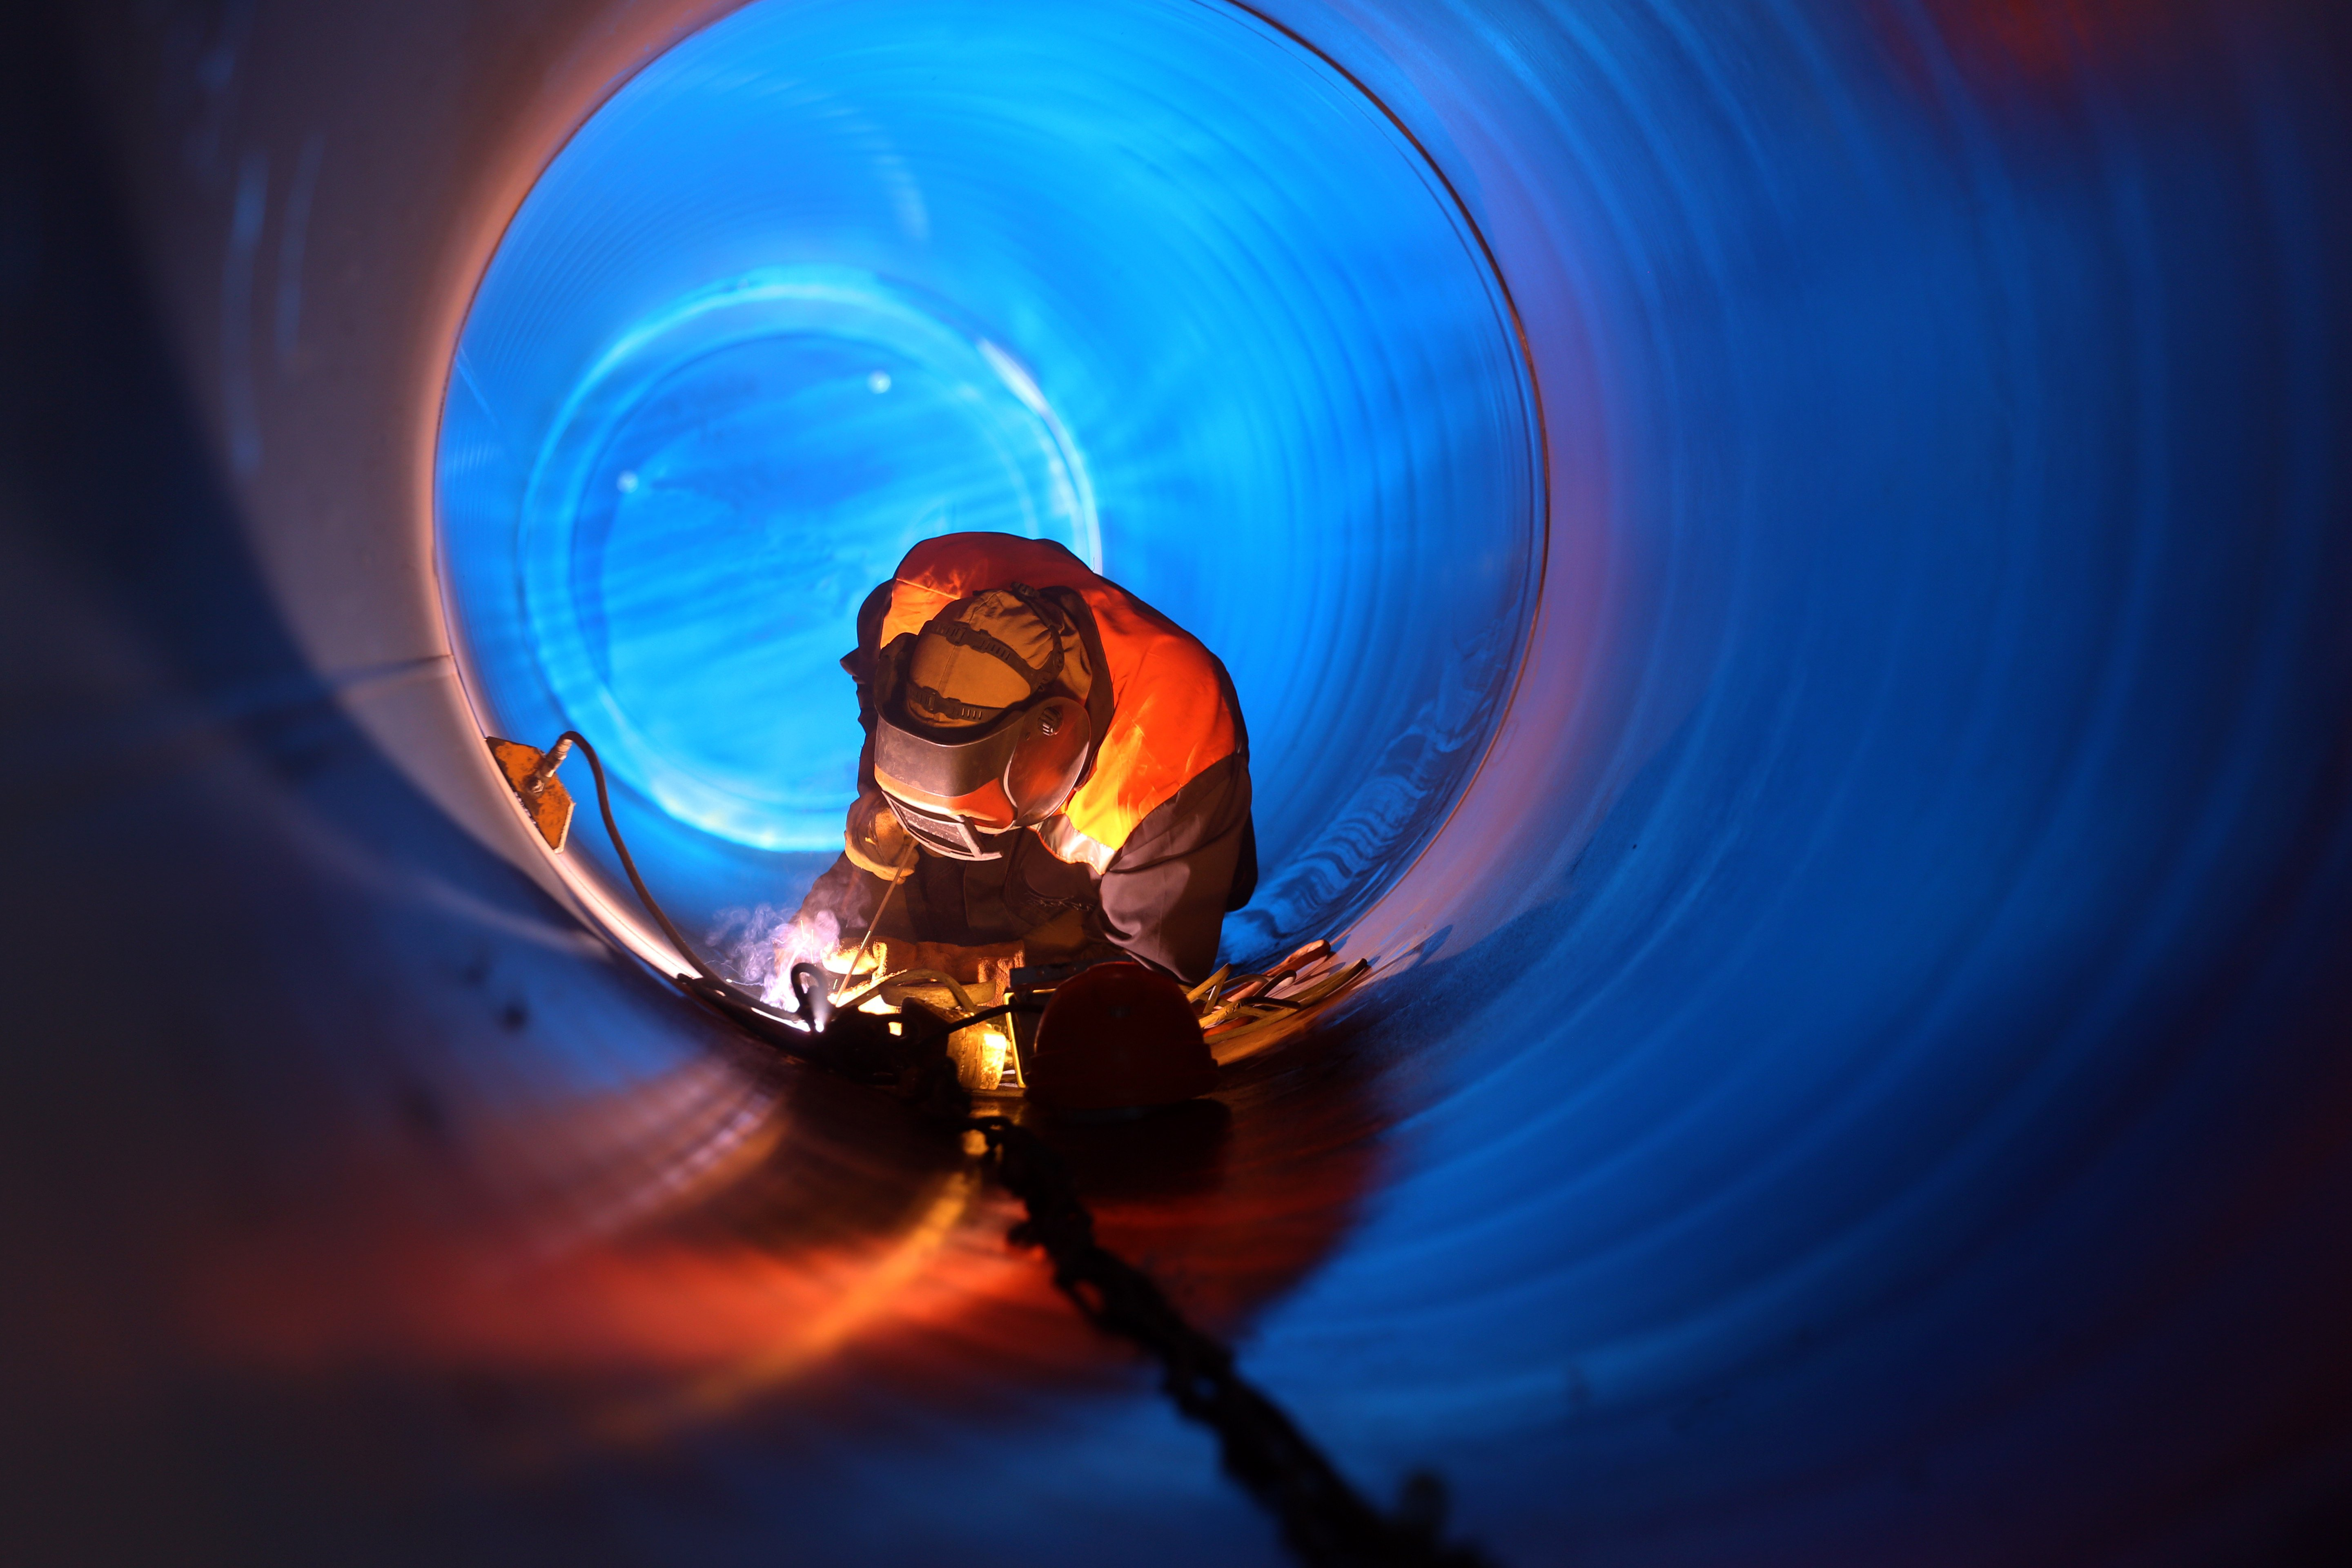 welder inside tube